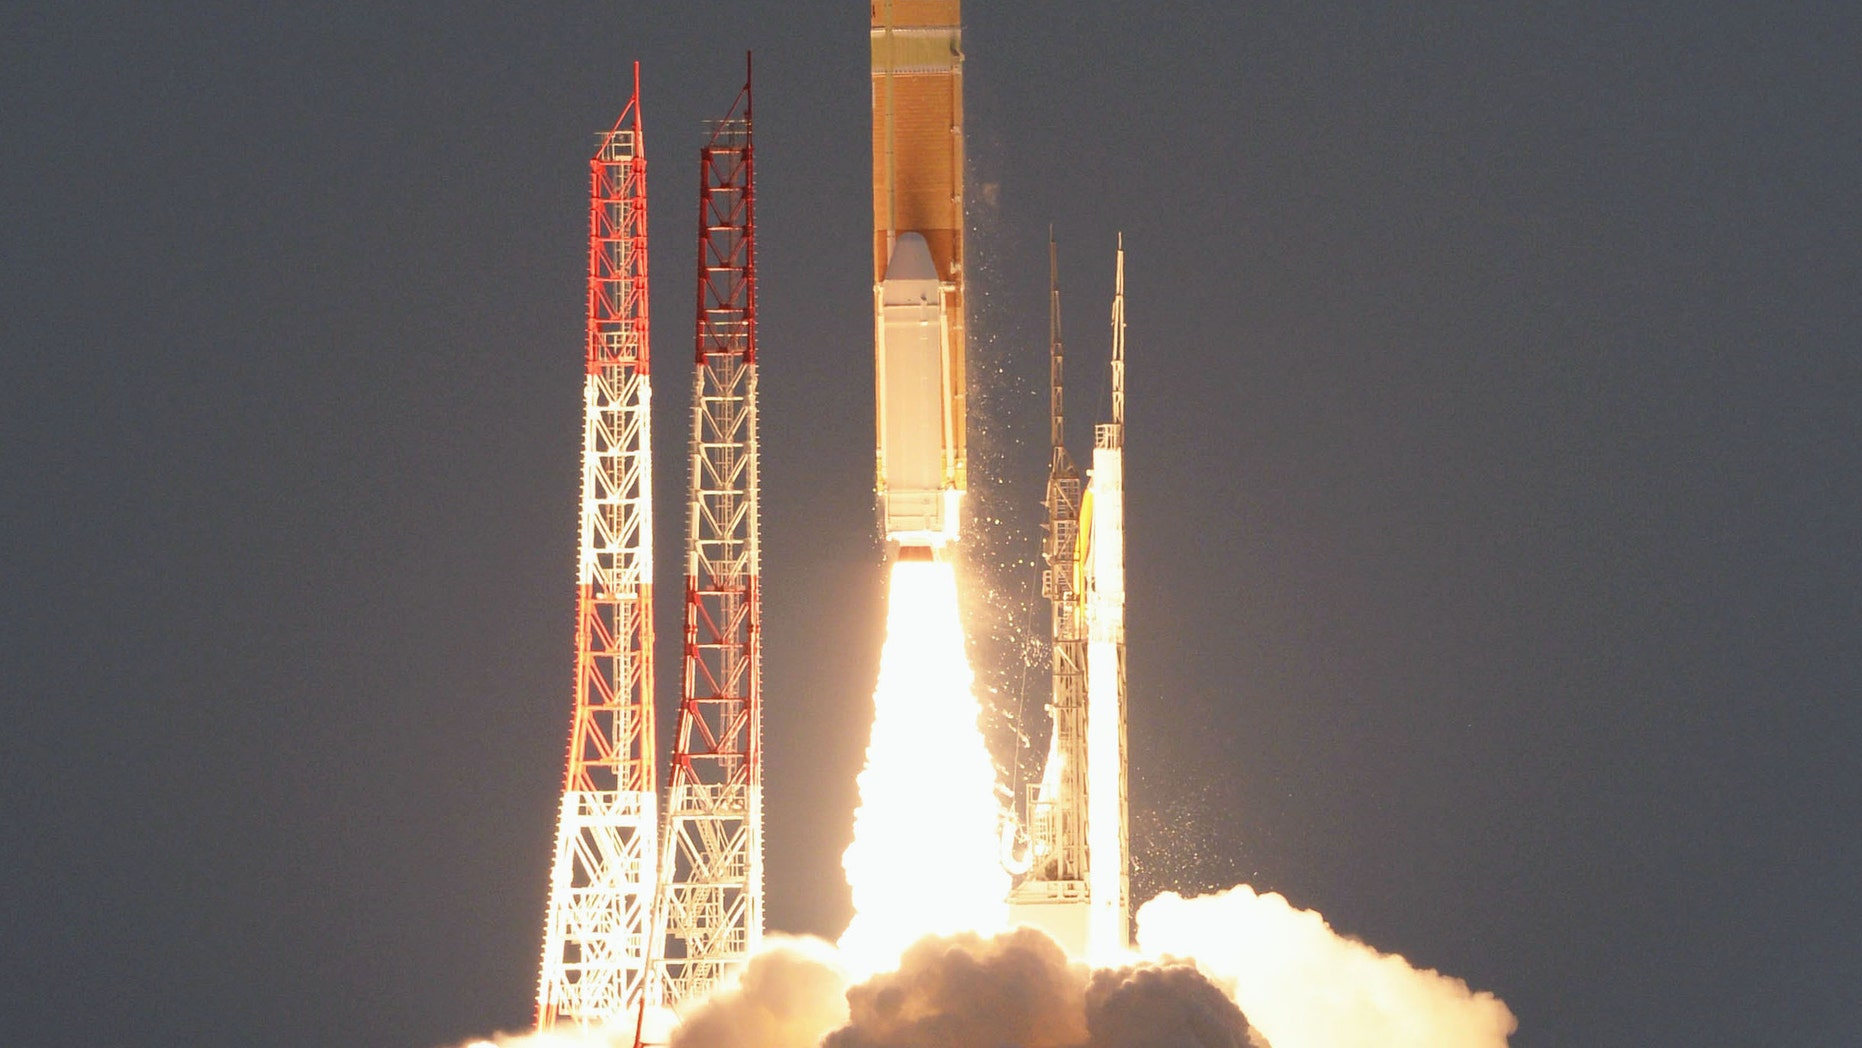 """In this Feb. 17, 2016 photo, an H-2A rocket carrying an X-ray astronomy satellite called """"Hitomi"""", is launched from the Tanegashima Space Center in Kagoshima Prefecture, southern Japan. (Kyodo News via AP)"""